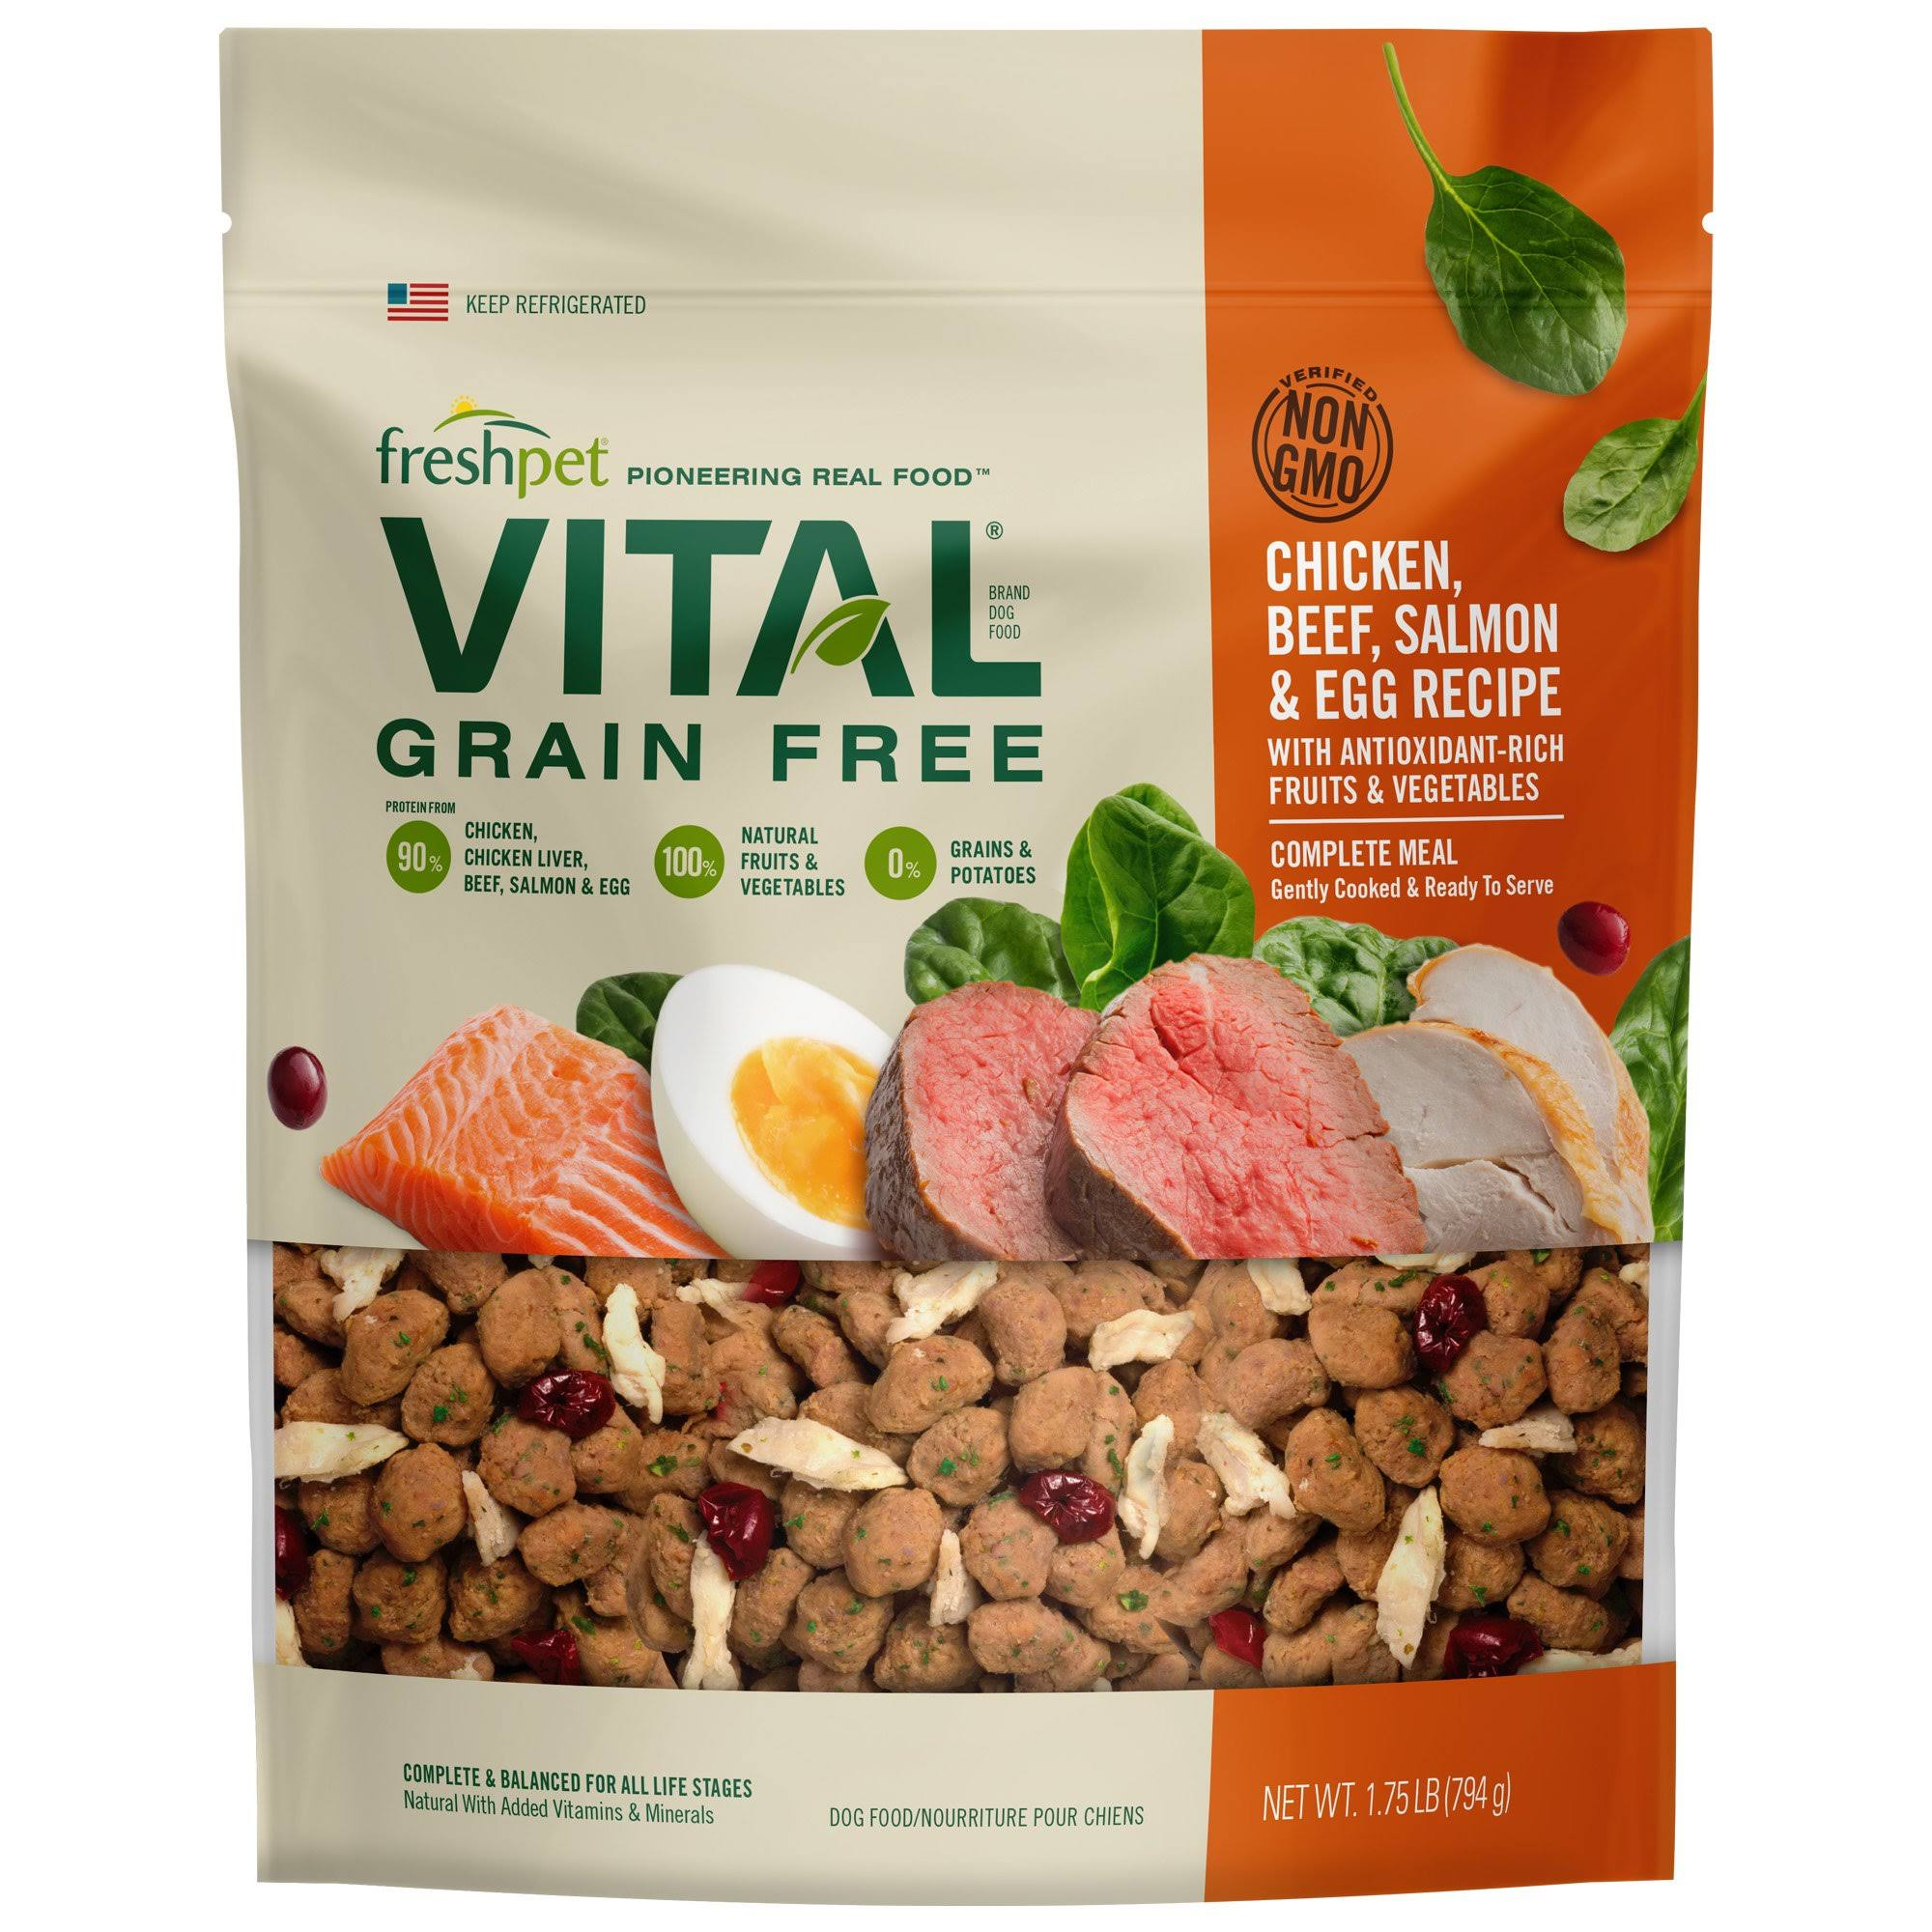 Freshpet Vital Complete Meals for Dogs - 1.75lbs